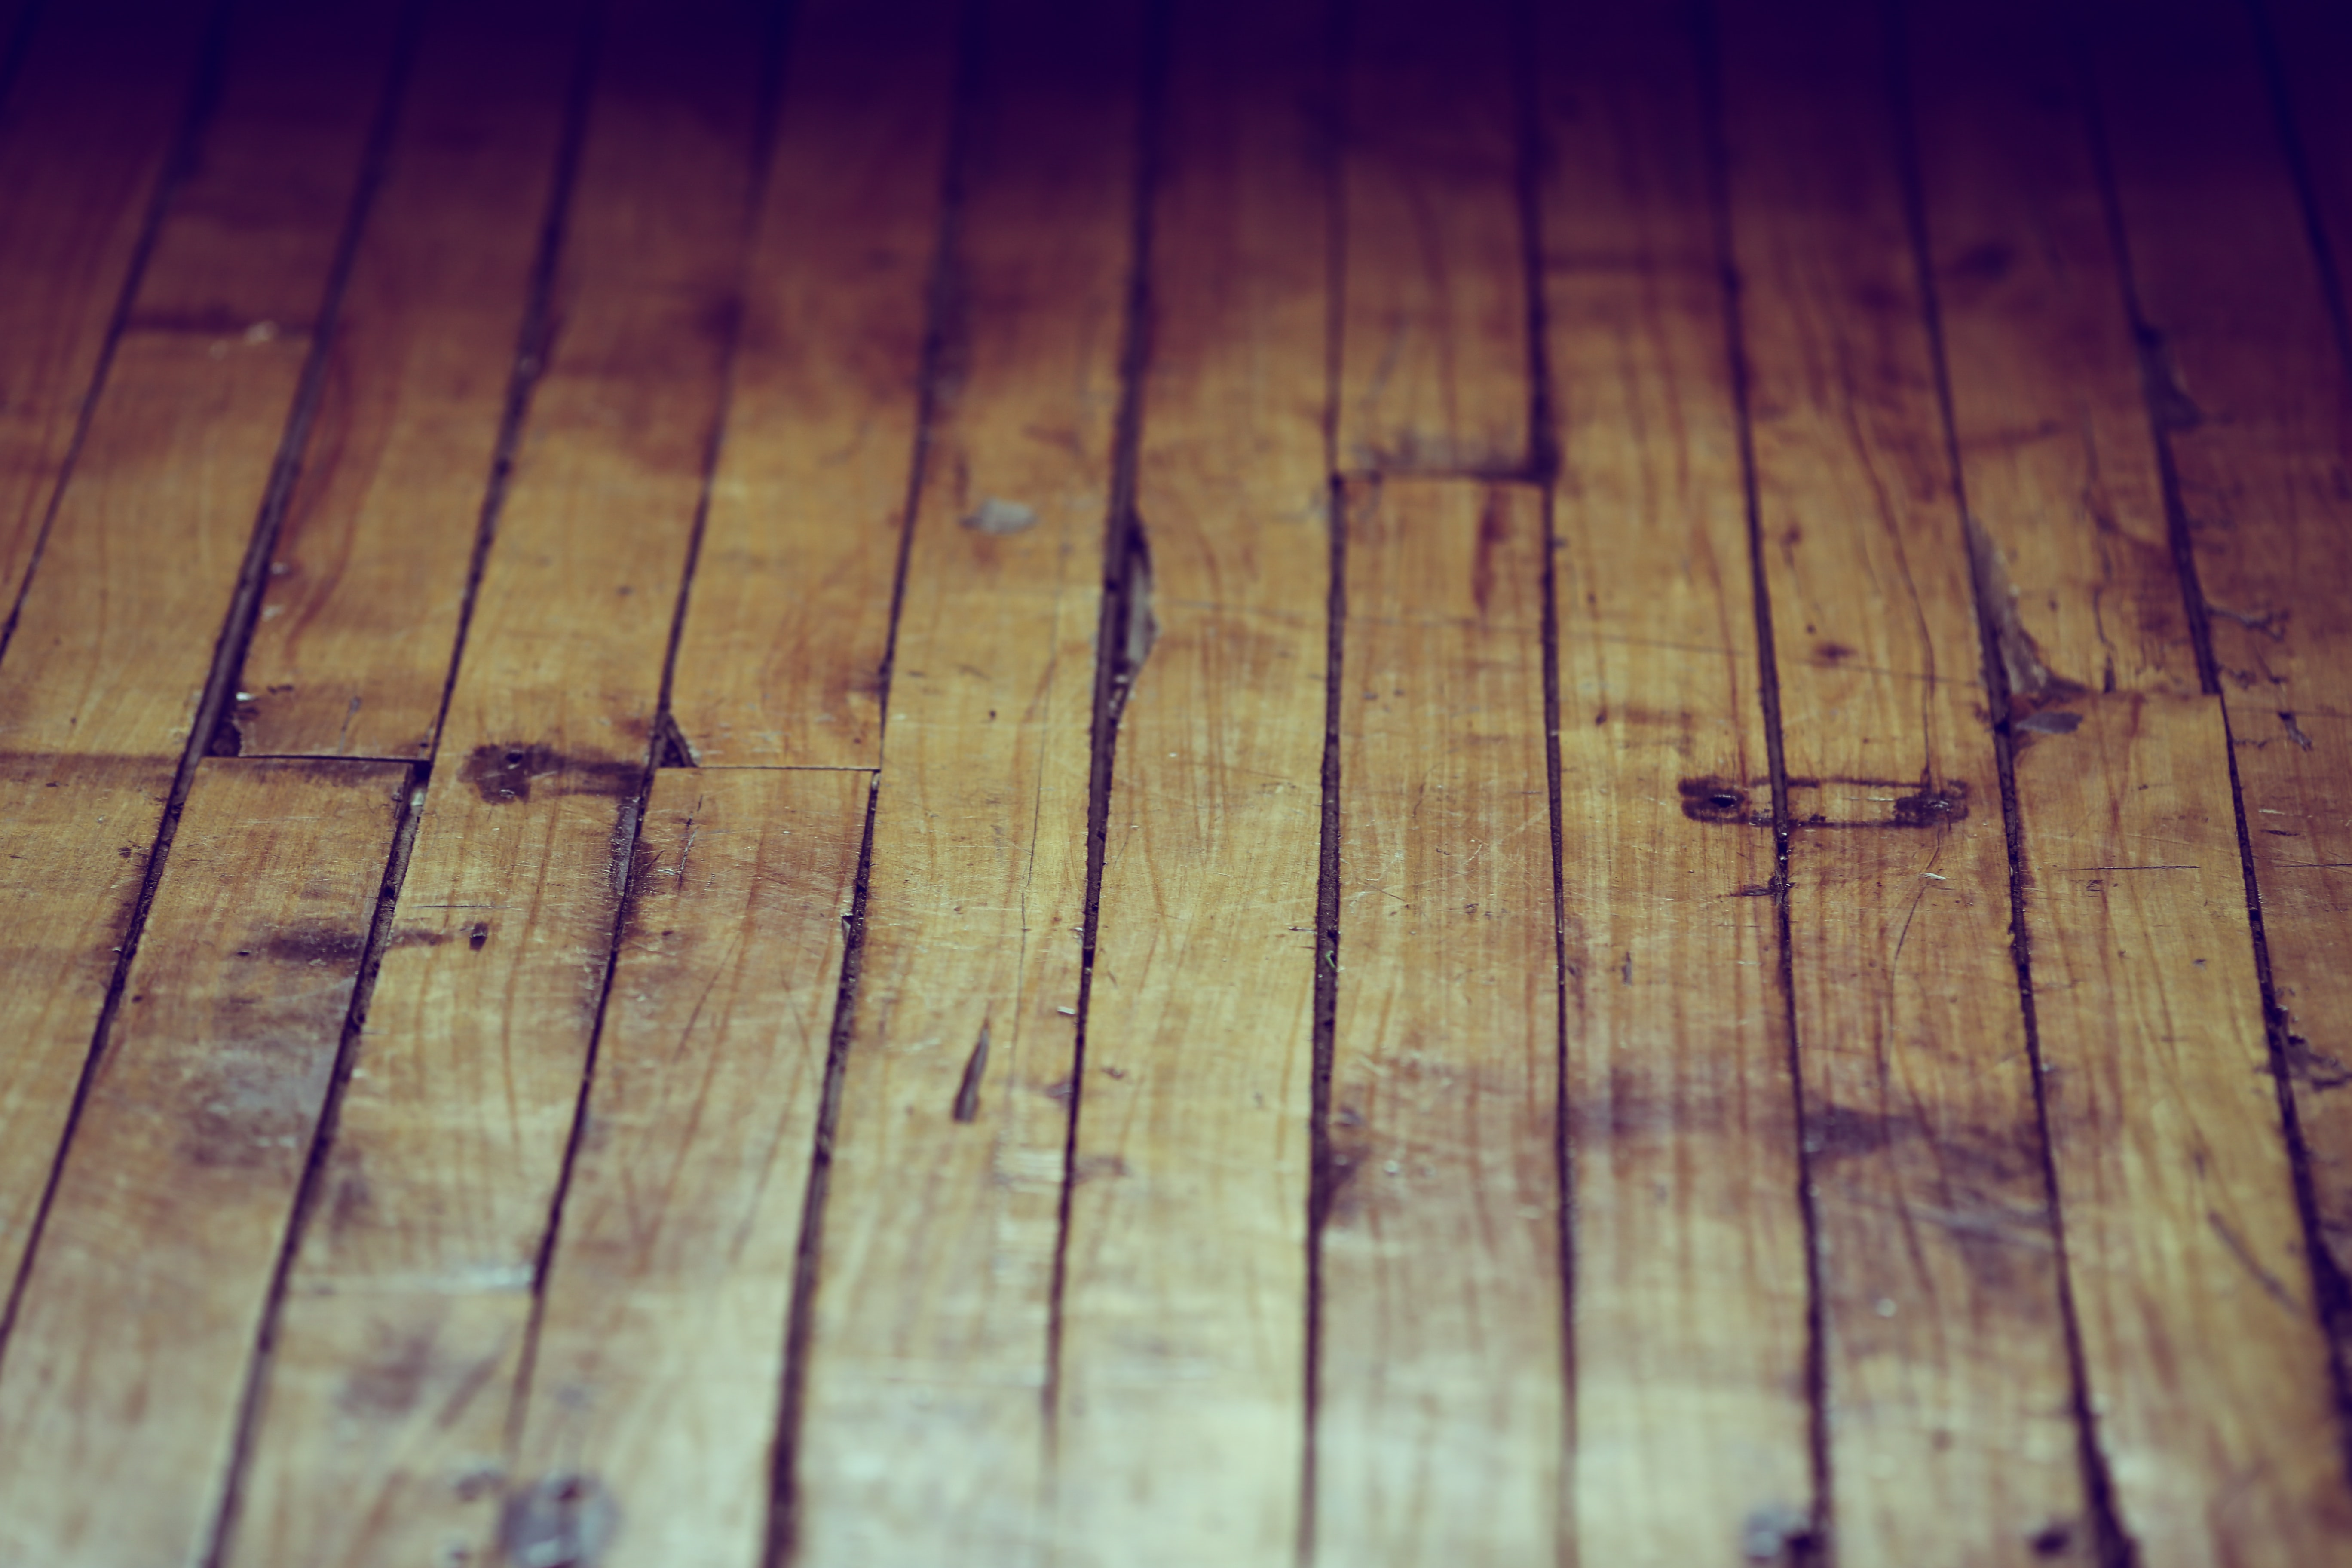 Close-up of an old wooden floor